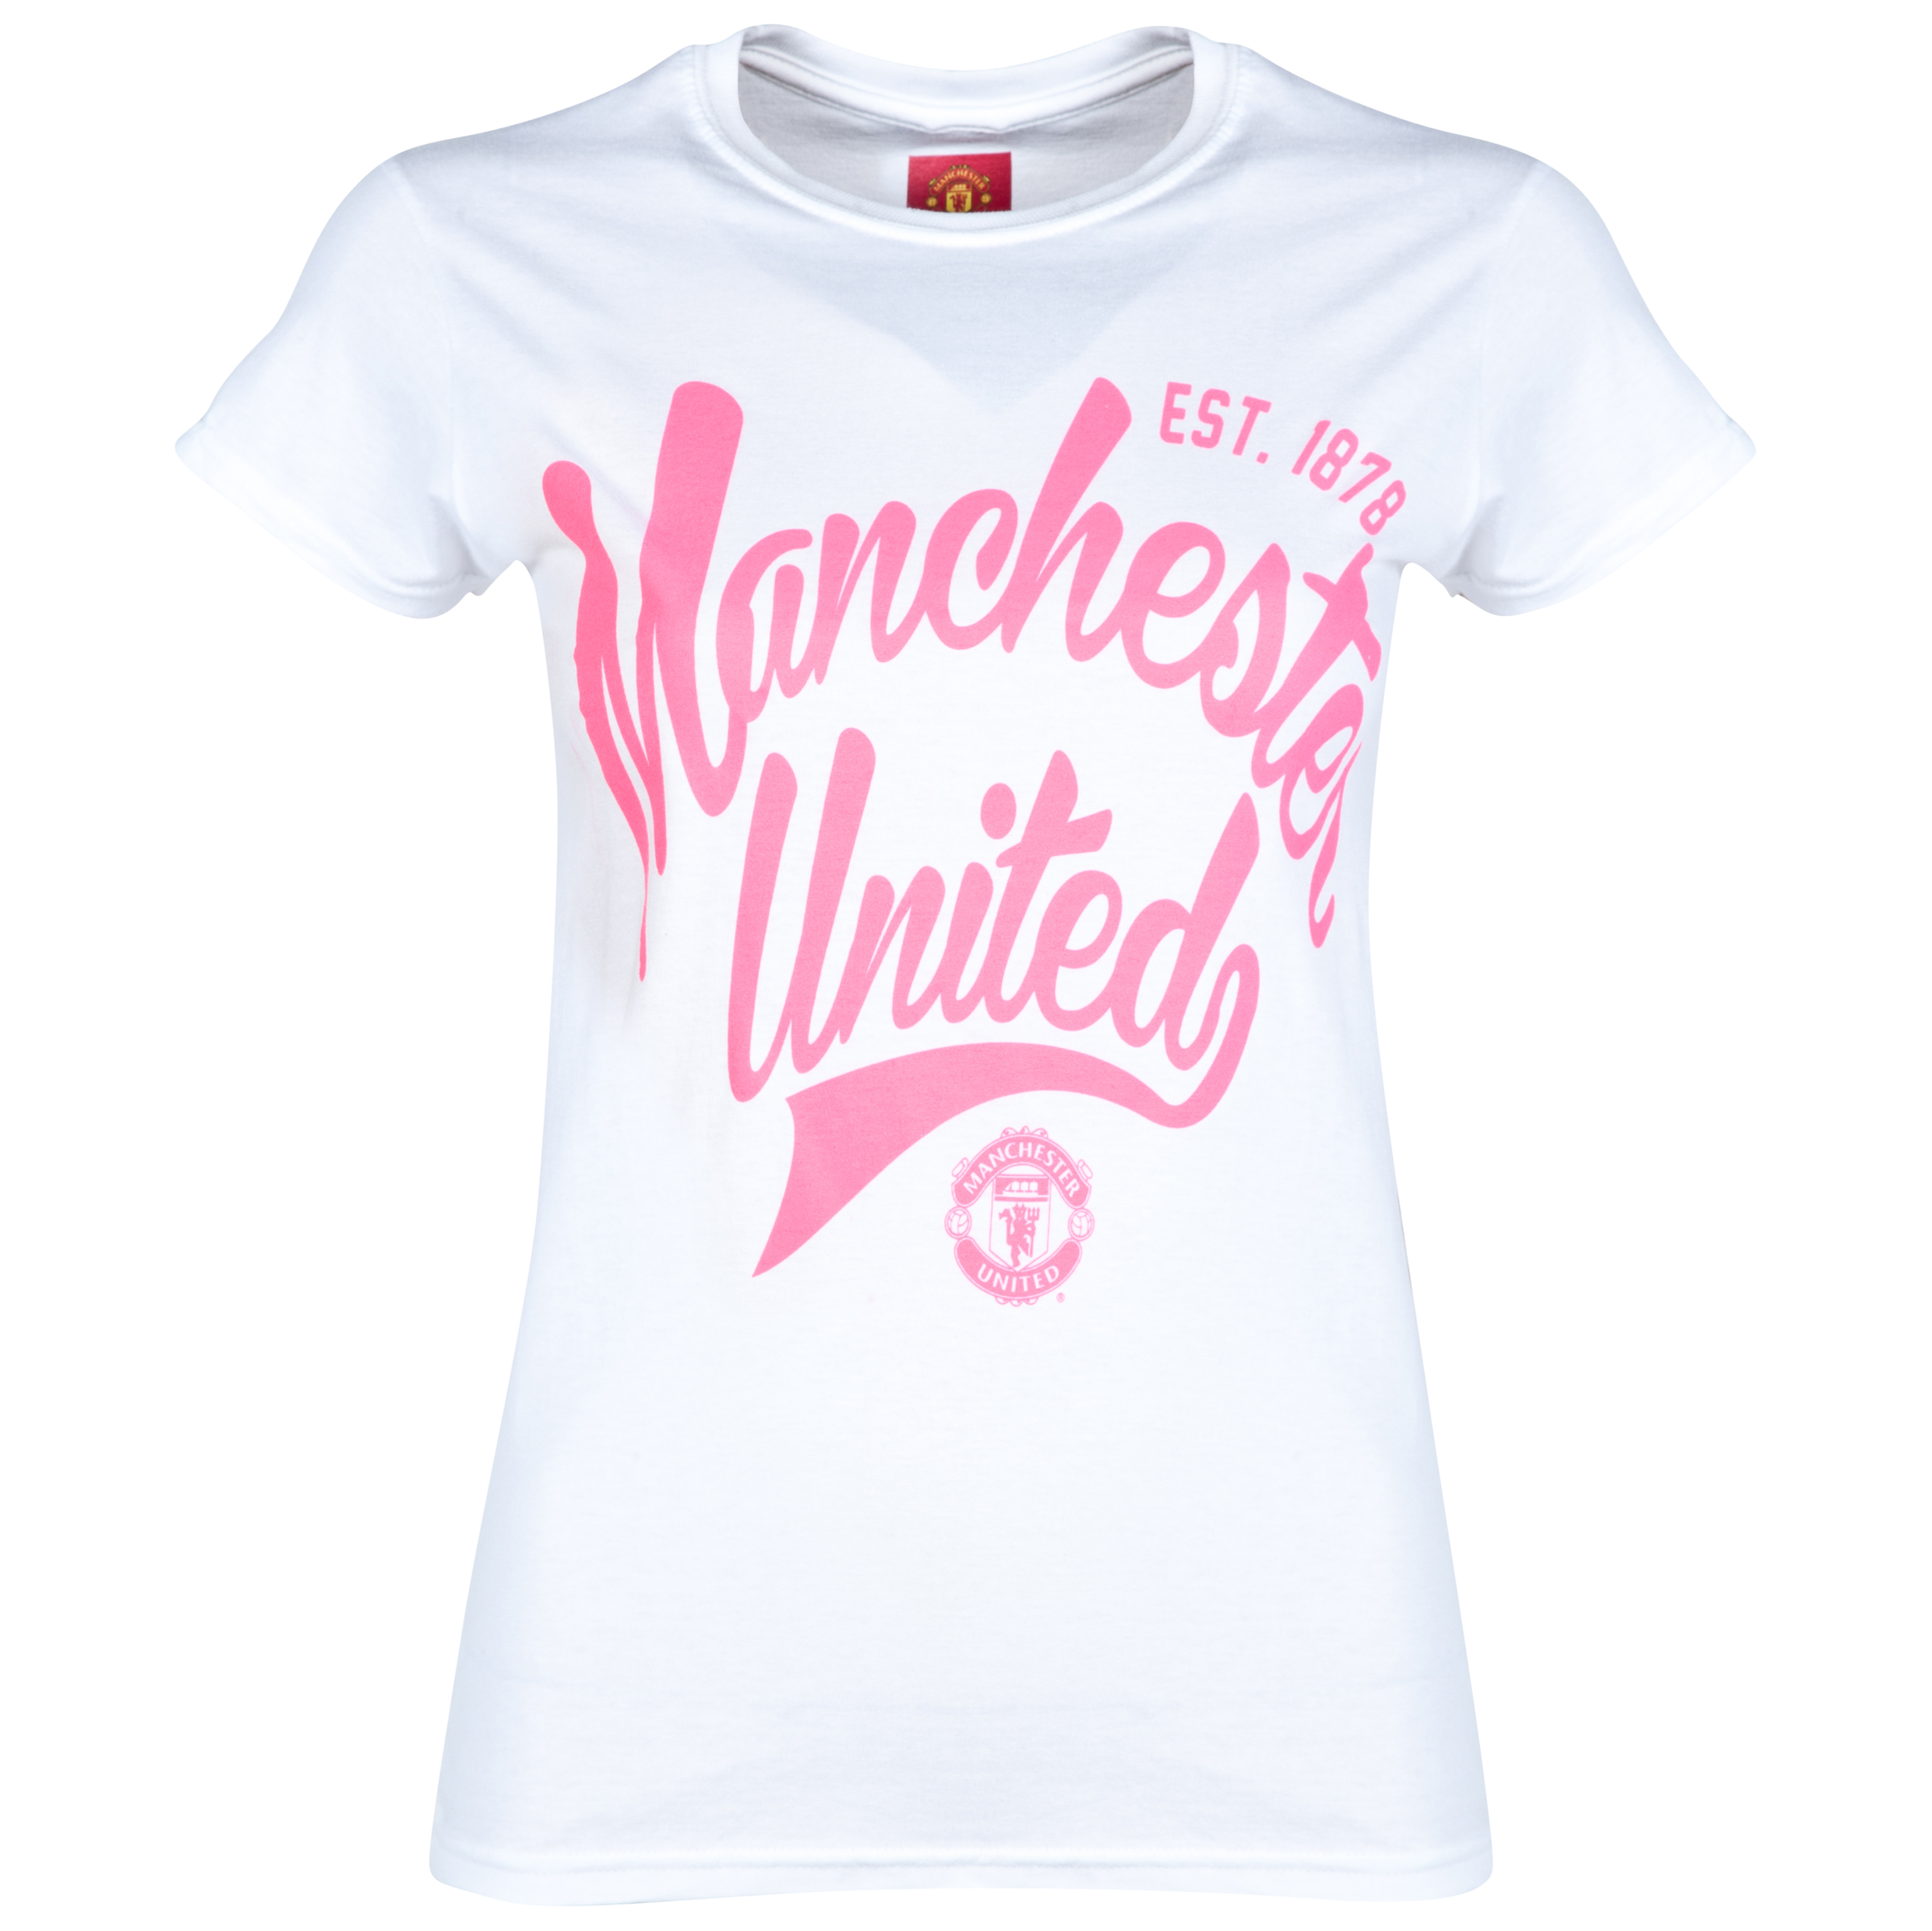 Manchester United Est.1878 T-Shirt - Womens White